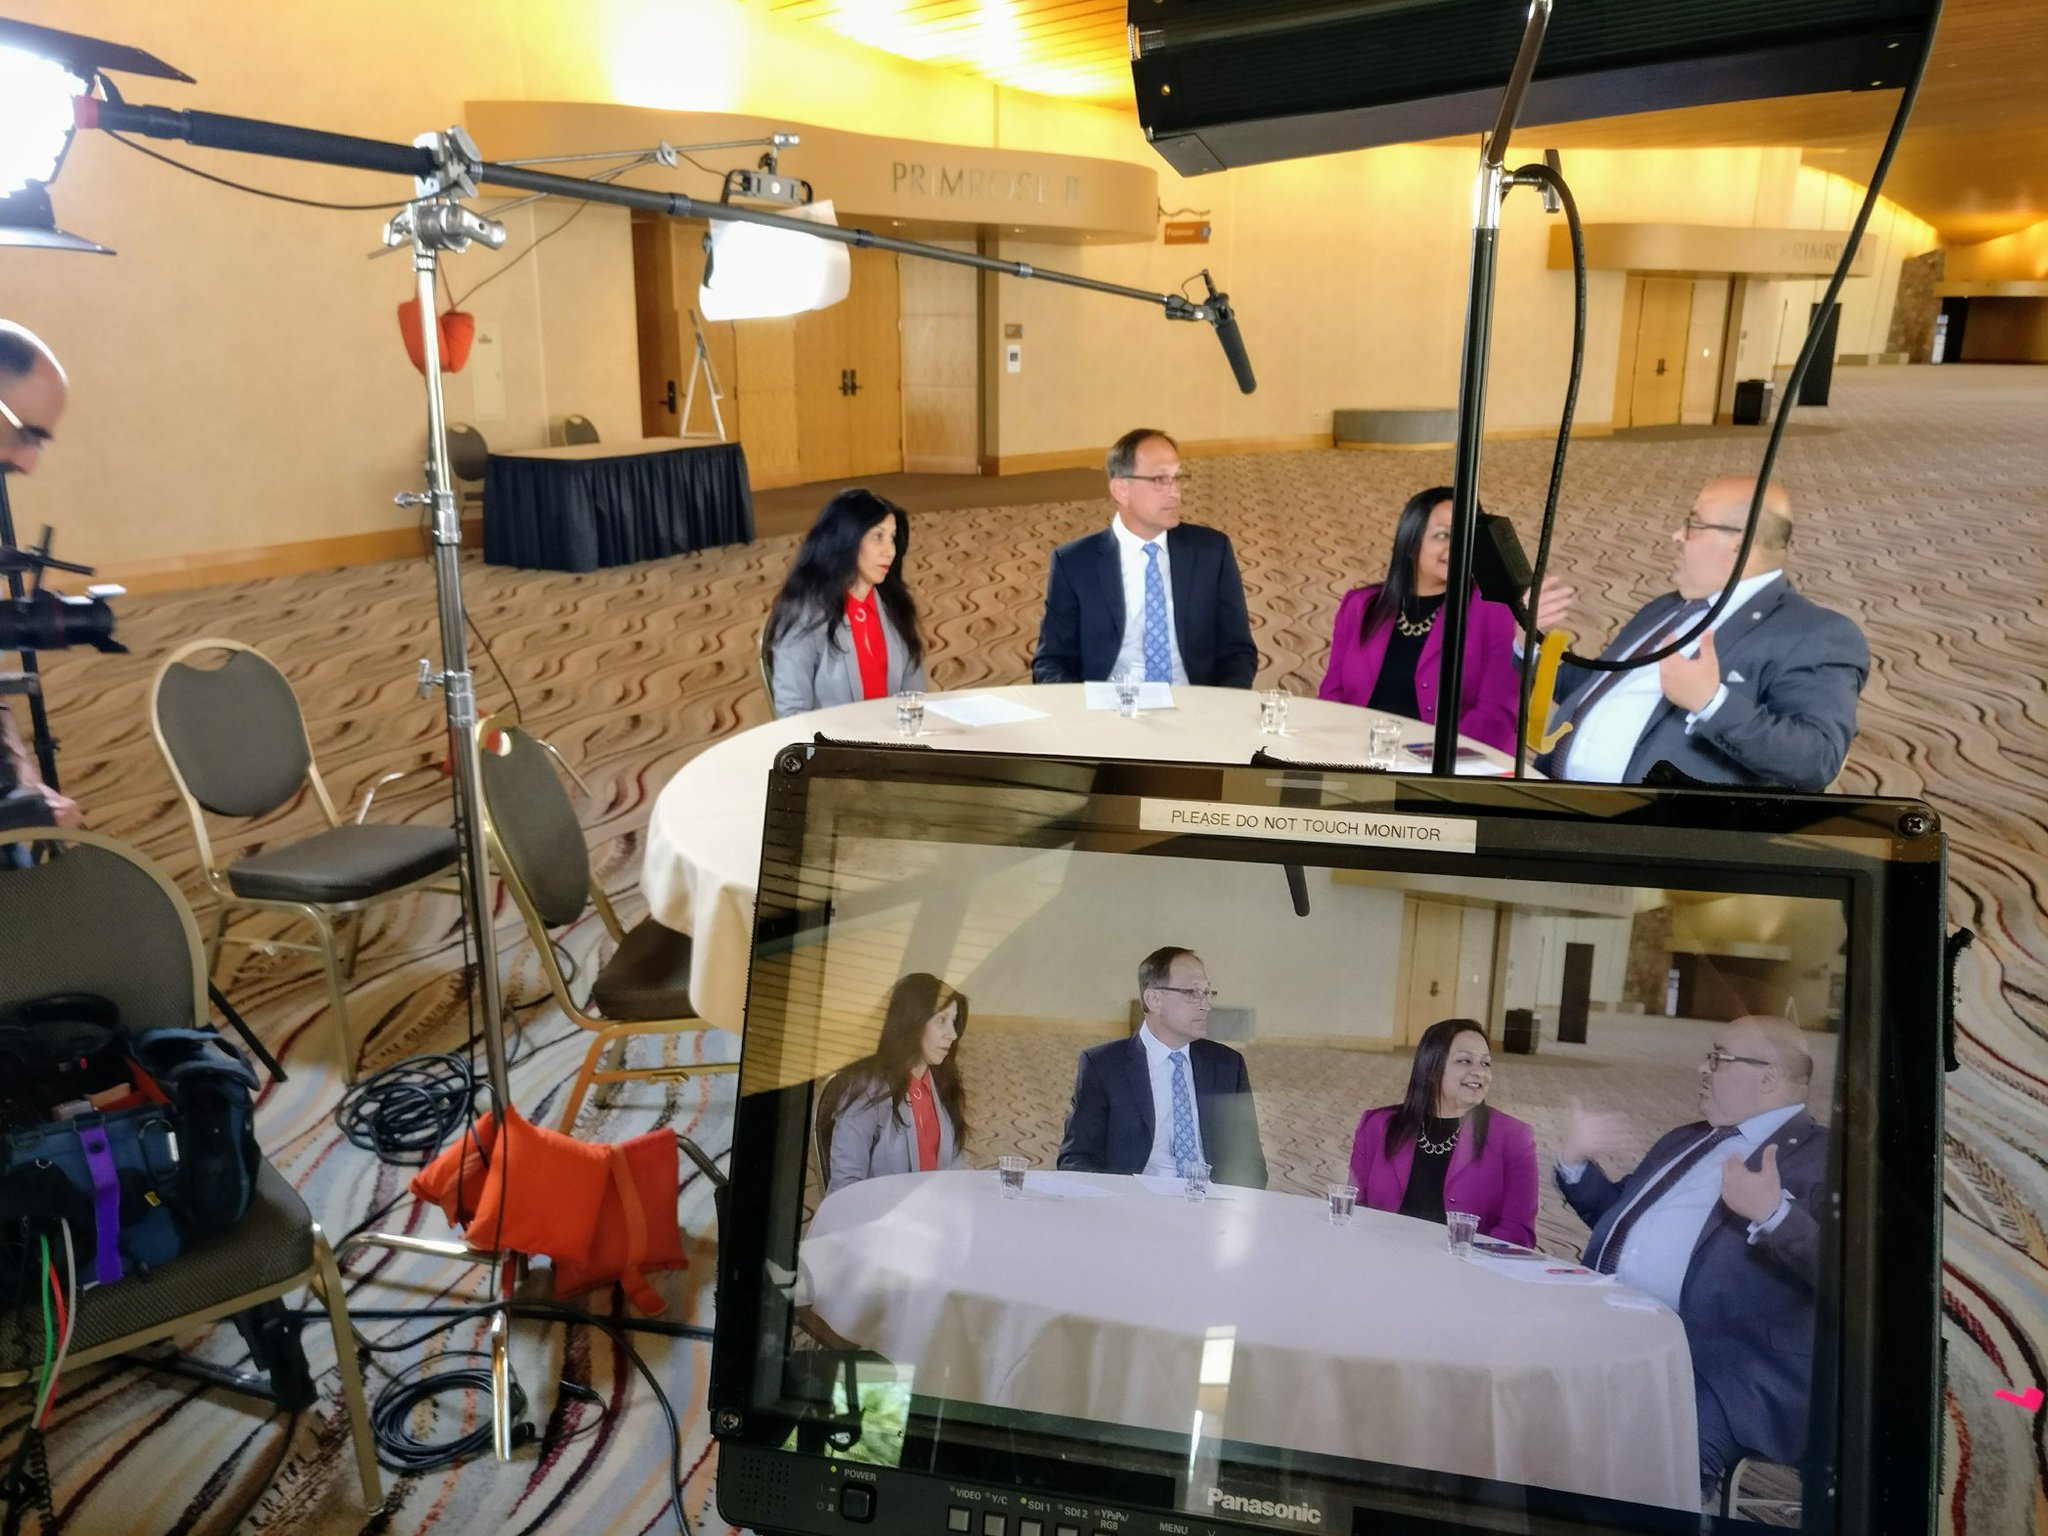 At #CWEAAC we're filming a roundtable discussion about #onewater w @radhikafox  @LA1H2O and Jim Herberg @OCSewers. It's ALL one water https://t.co/t0oN4GNT14